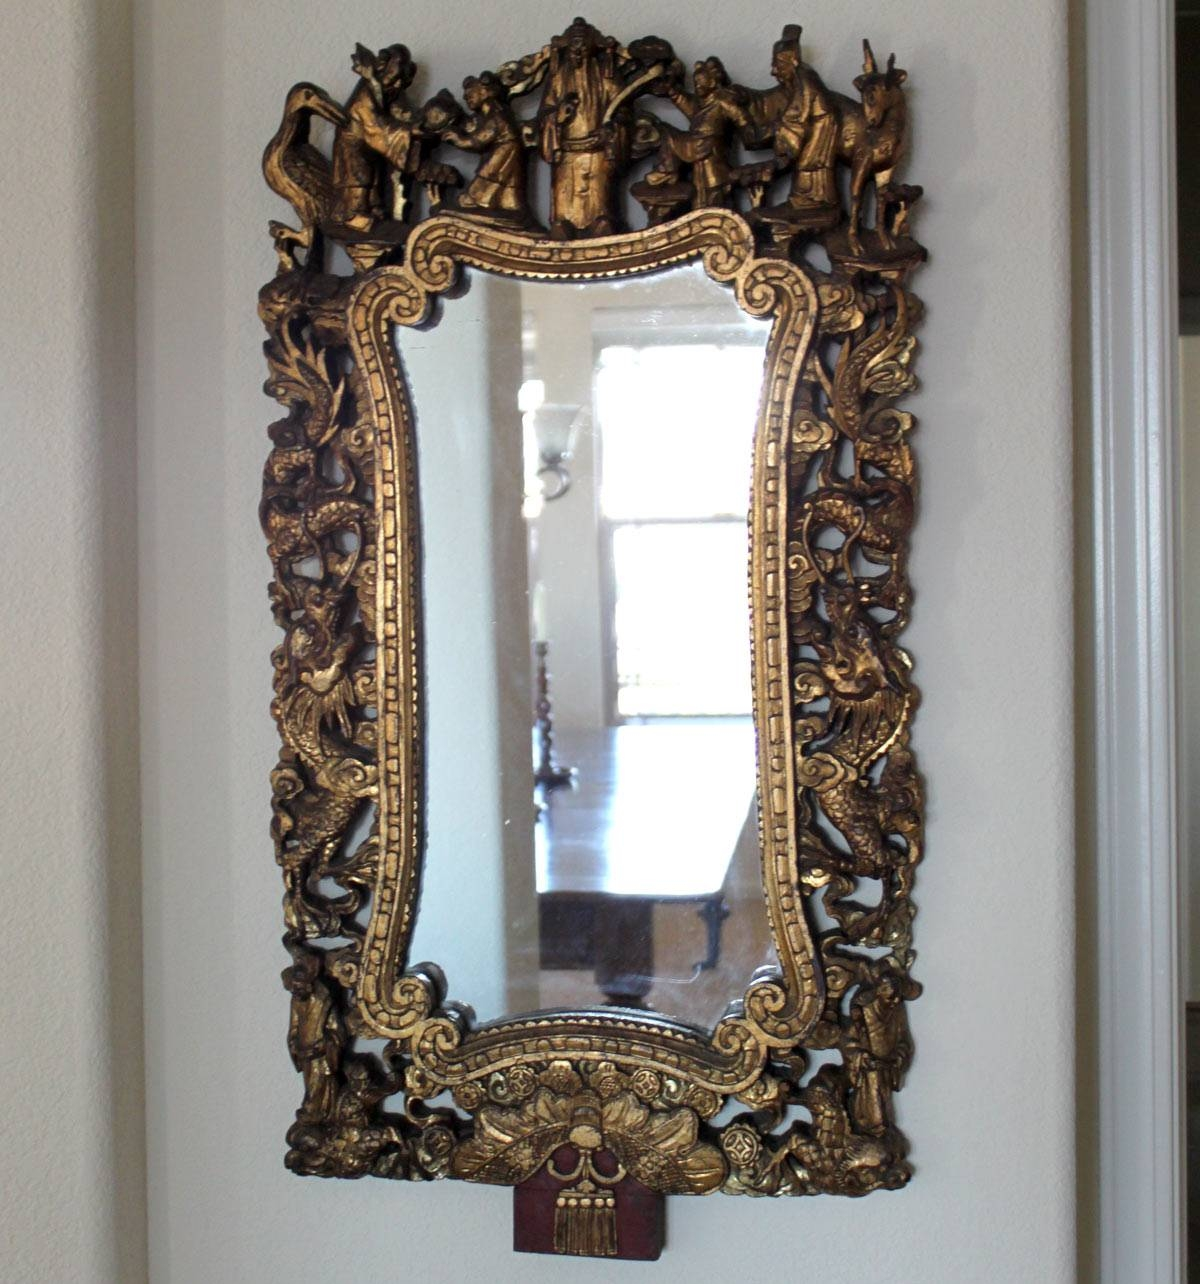 Classic Antique Mirrors Images - Reverse Search with regard to Chinese Mirrors (Image 15 of 25)